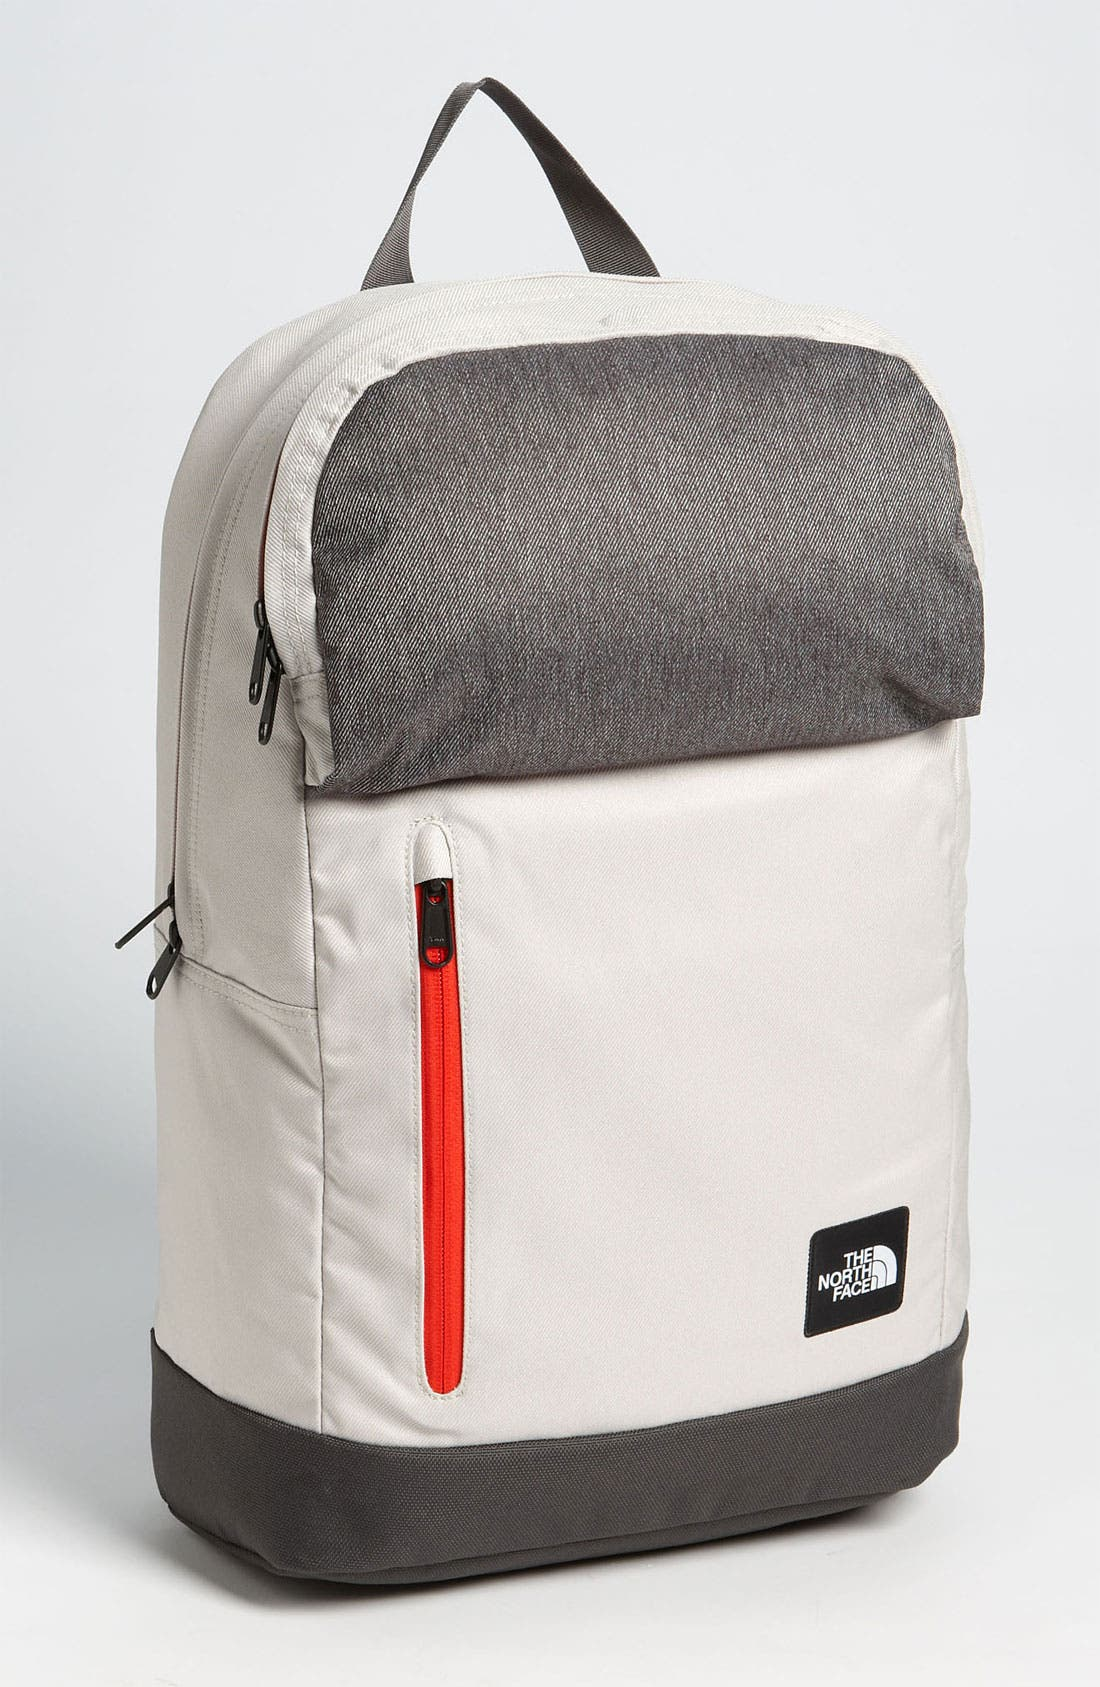 Main Image - The North Face 'Singletasker' Backpack